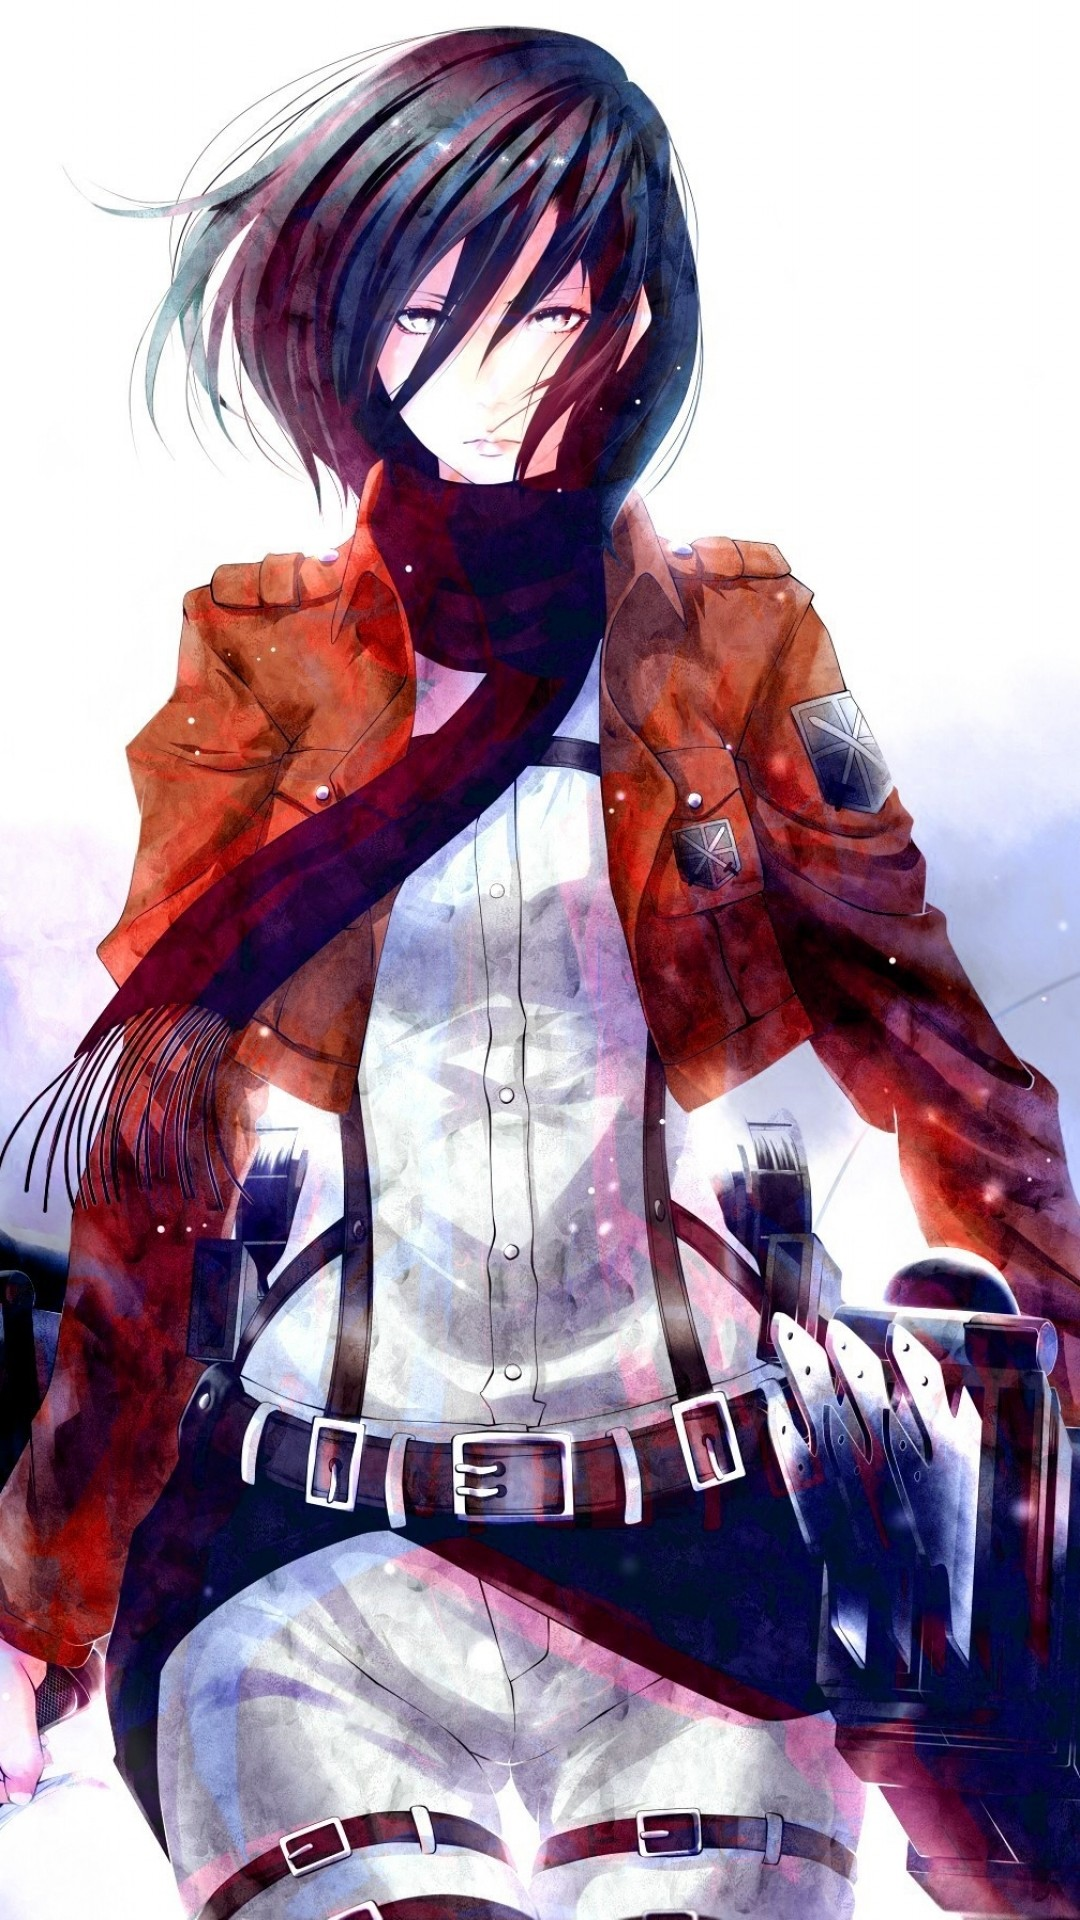 Attack On Titan Wallpaper For Android Anime Attack On Titan Hd 1080x1920 Wallpaper Teahub Io